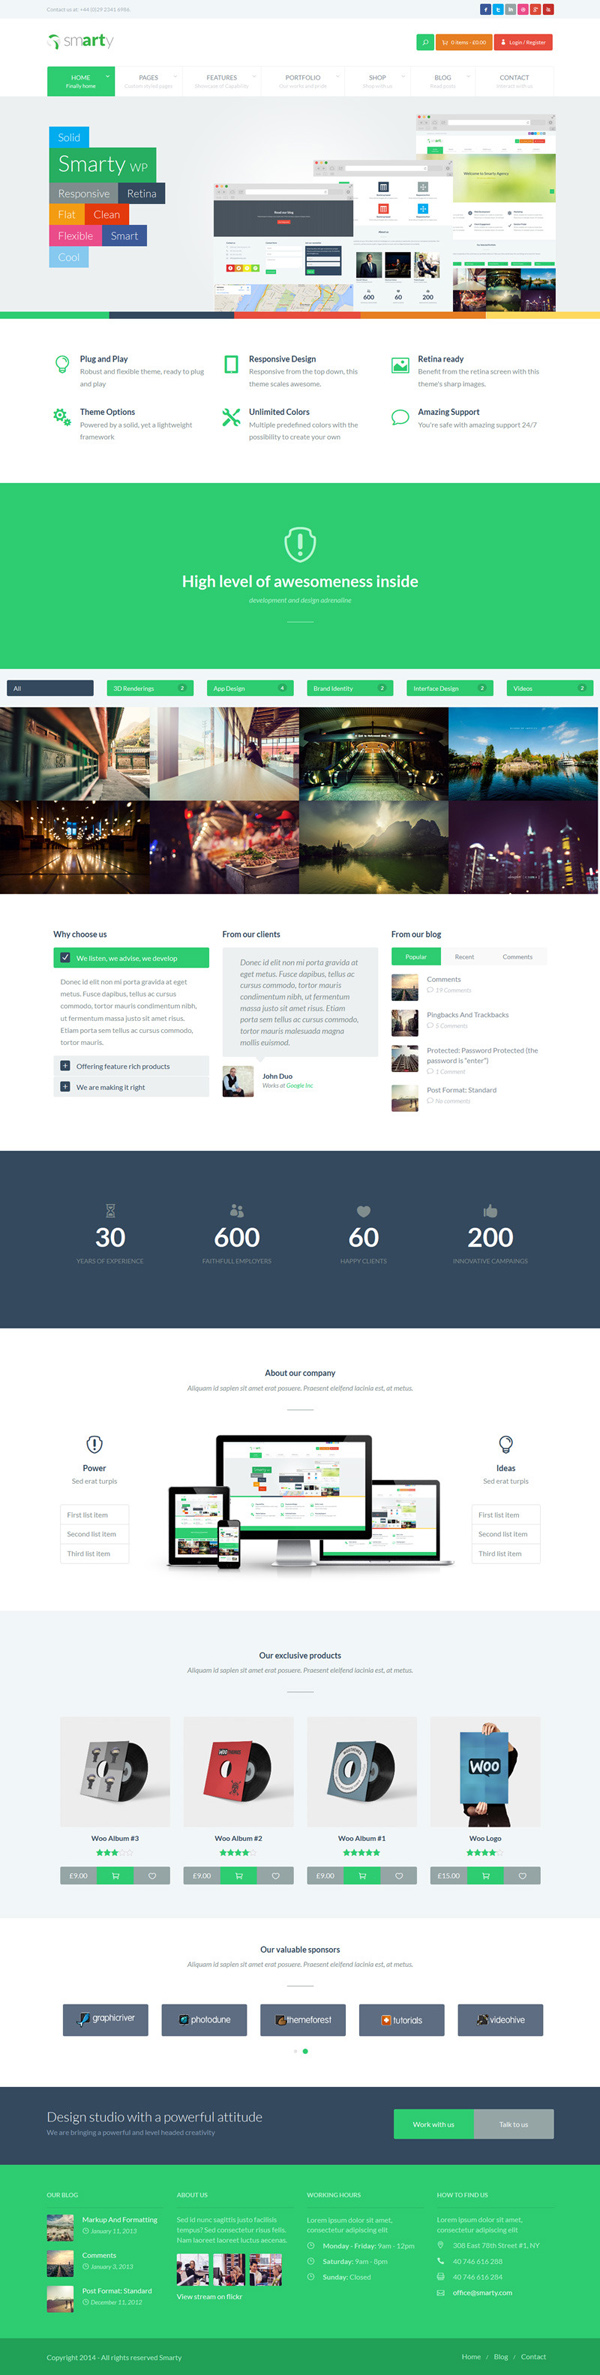 Smarty - Portfolio & Shop WordPress Theme